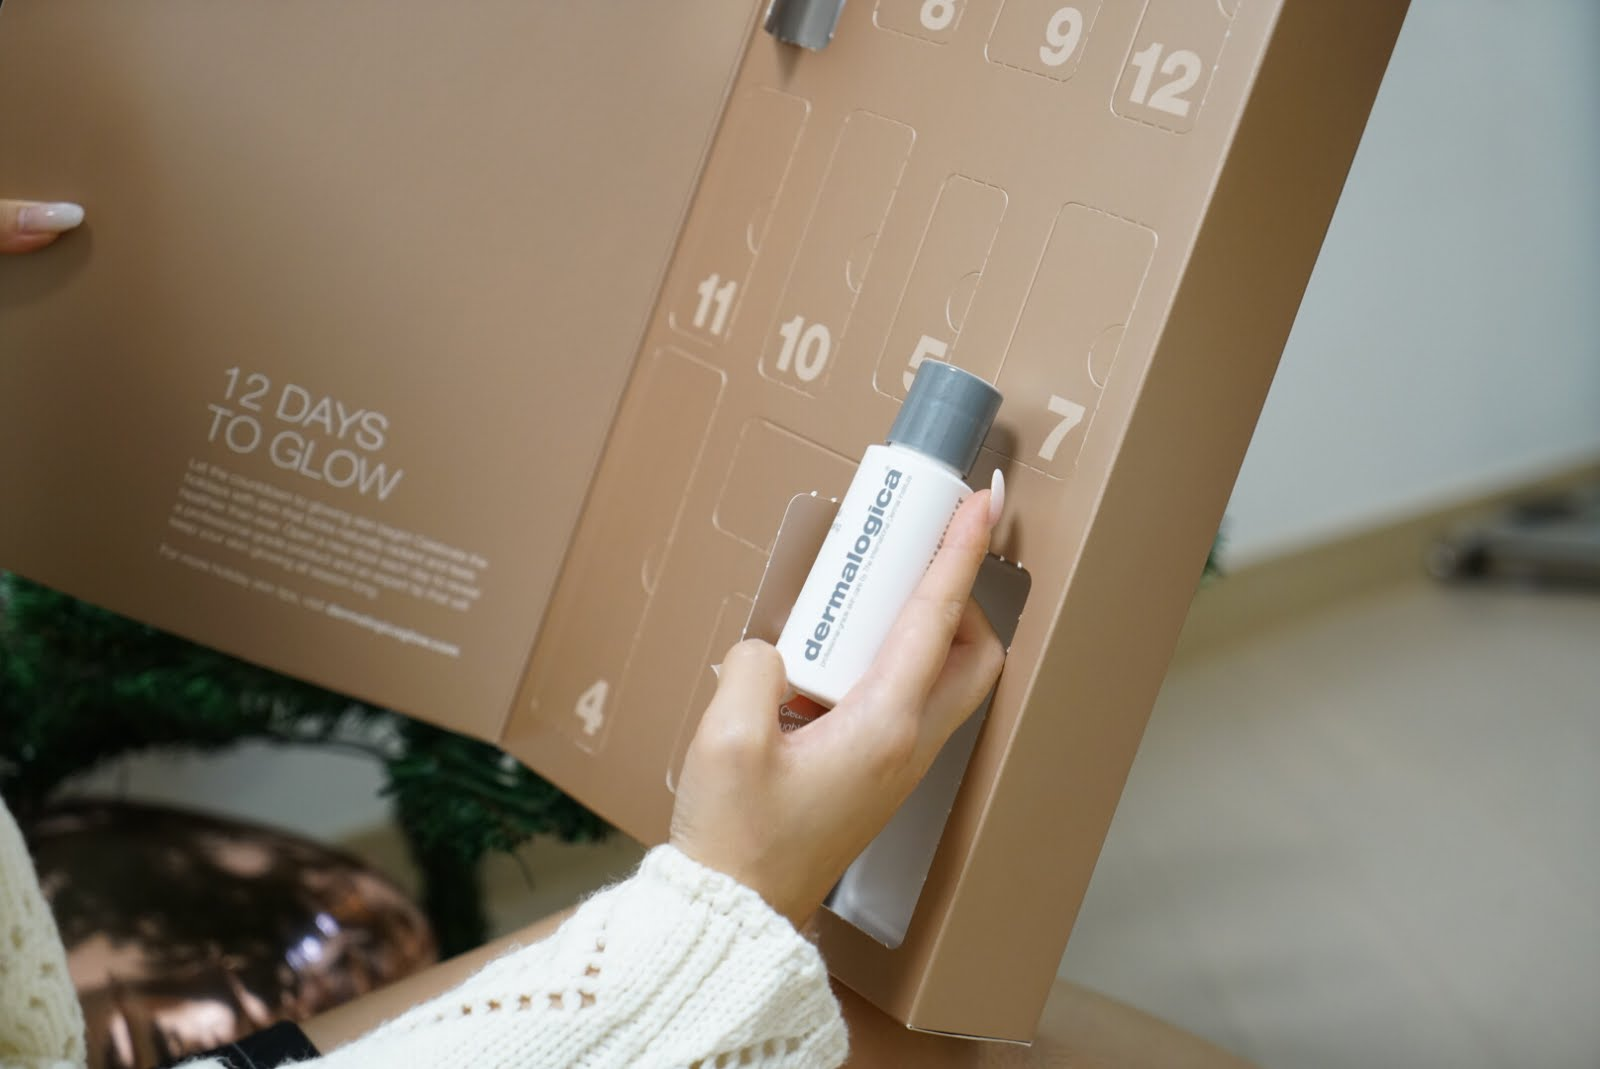 聖誕倒數月曆丨Dermalogica 12 Days To Glow Advent Calendar